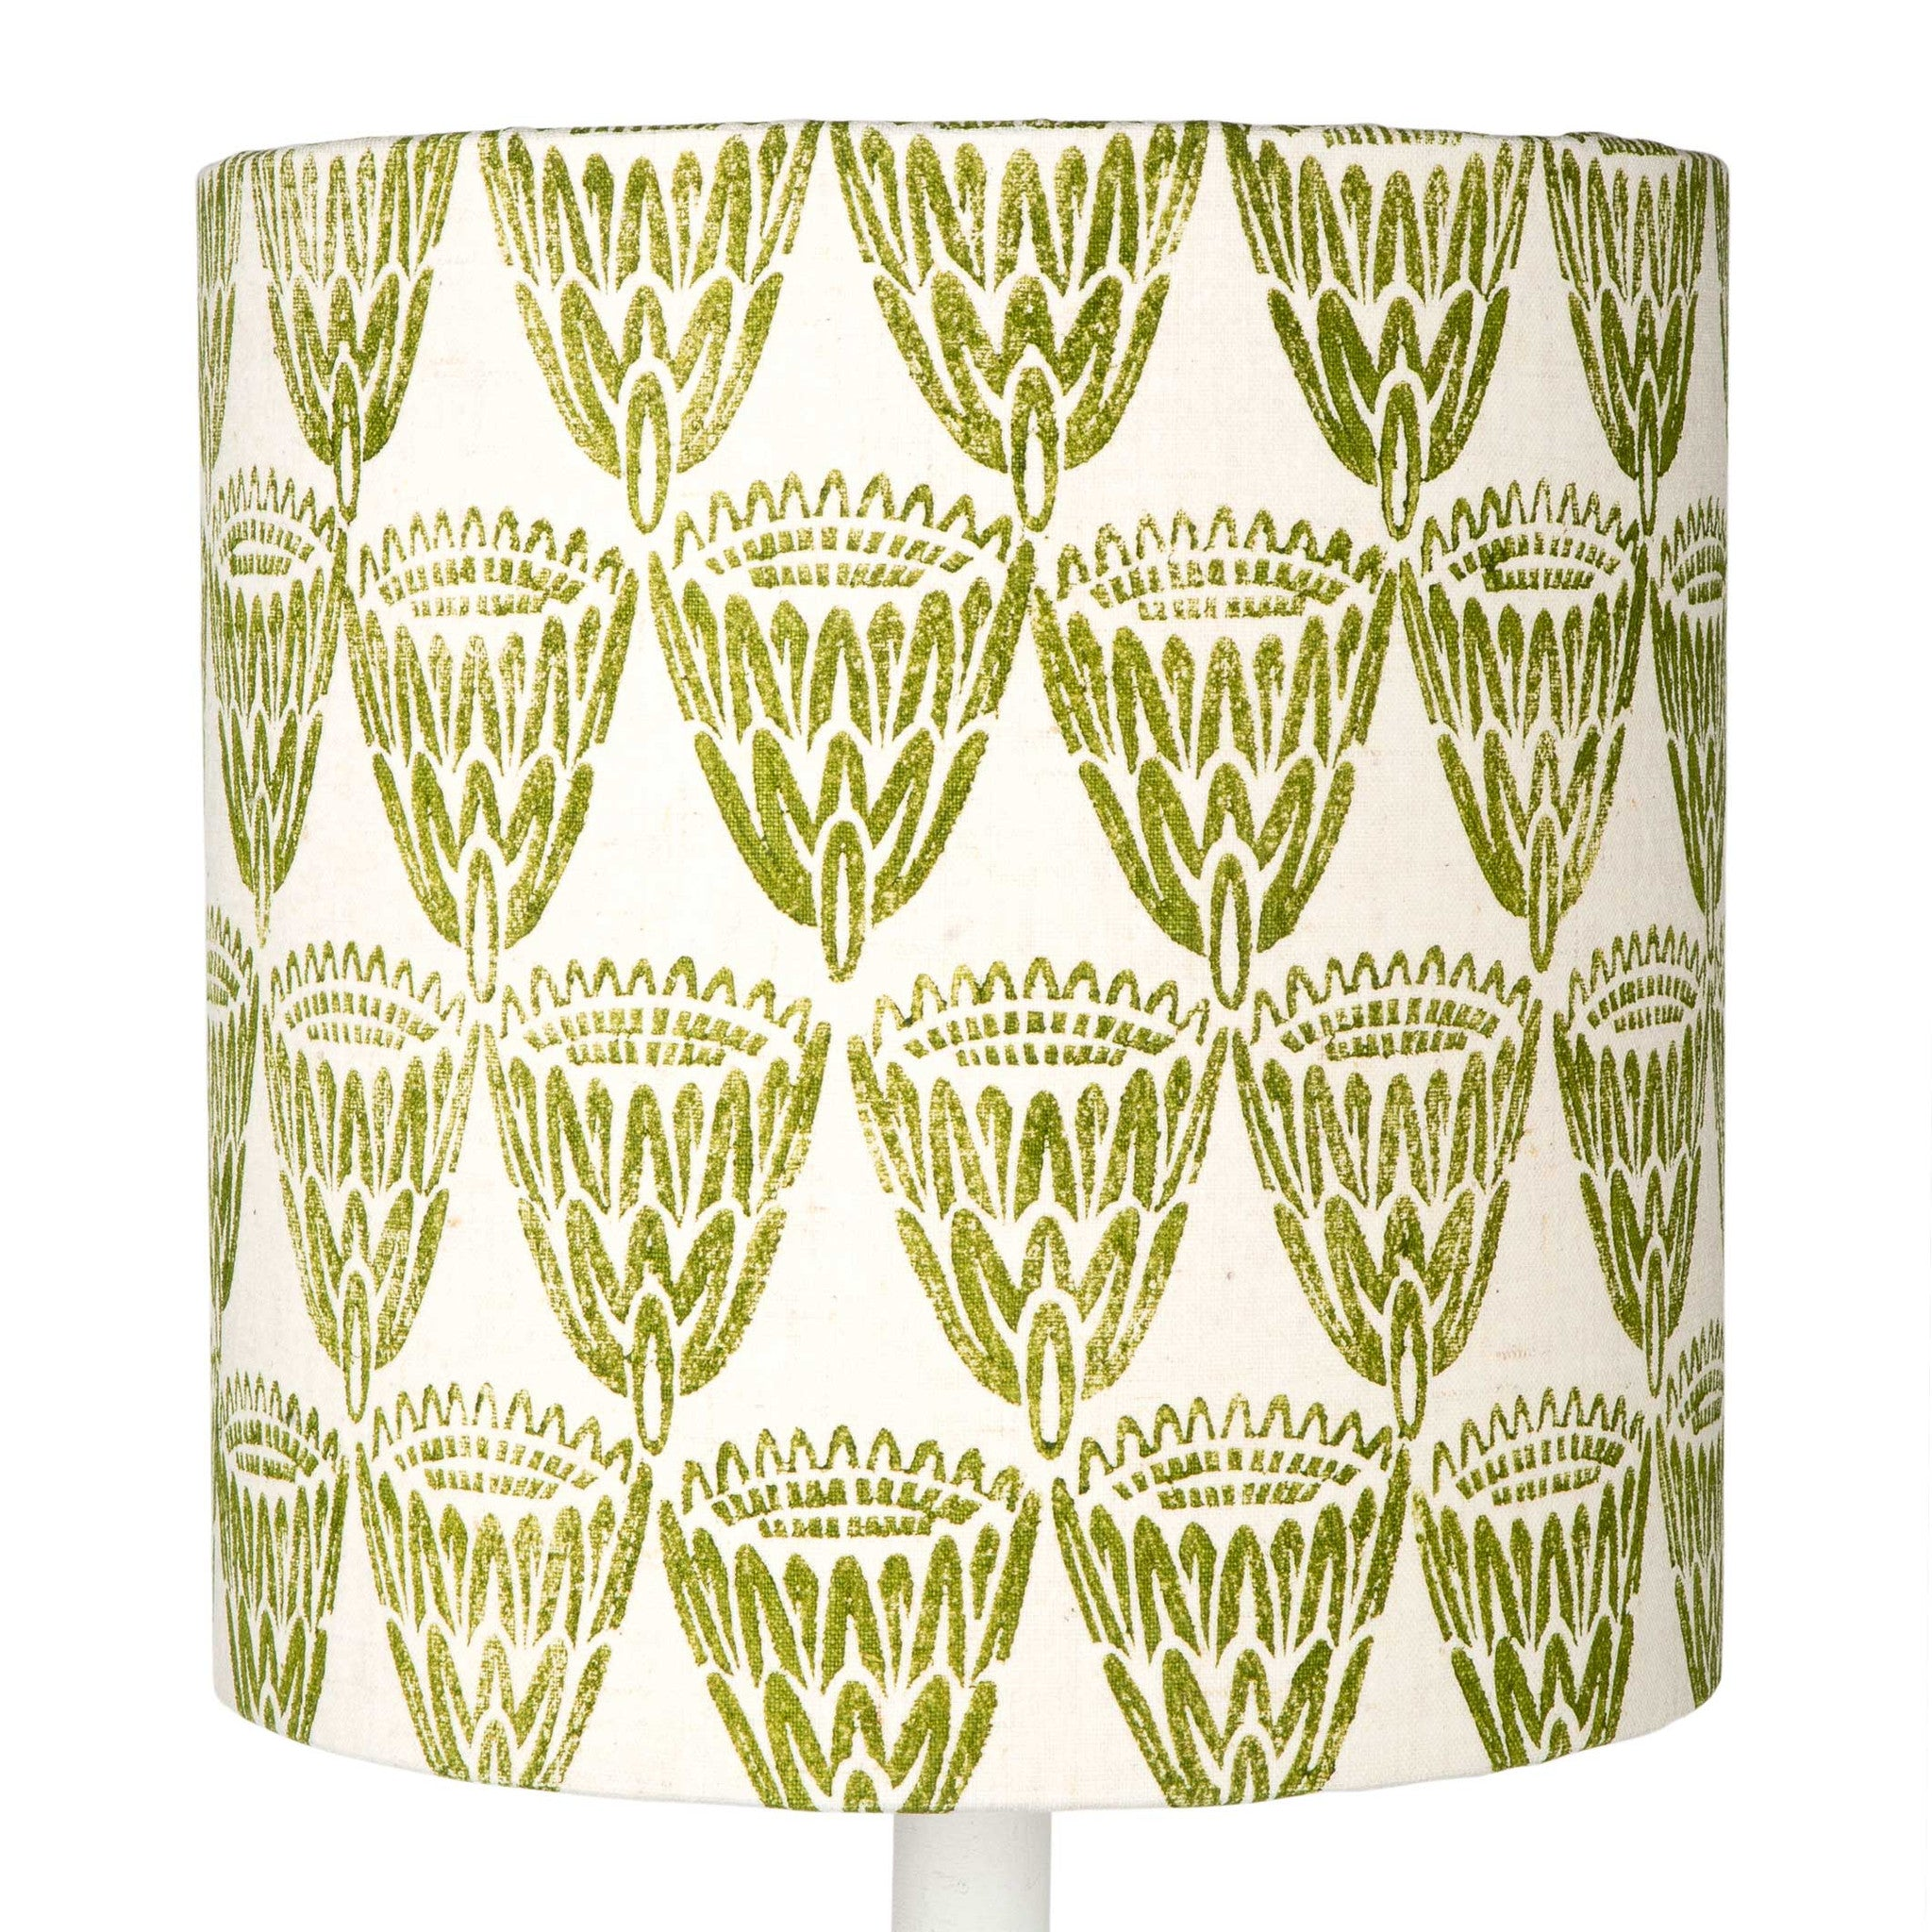 Green King Protea table lampshade